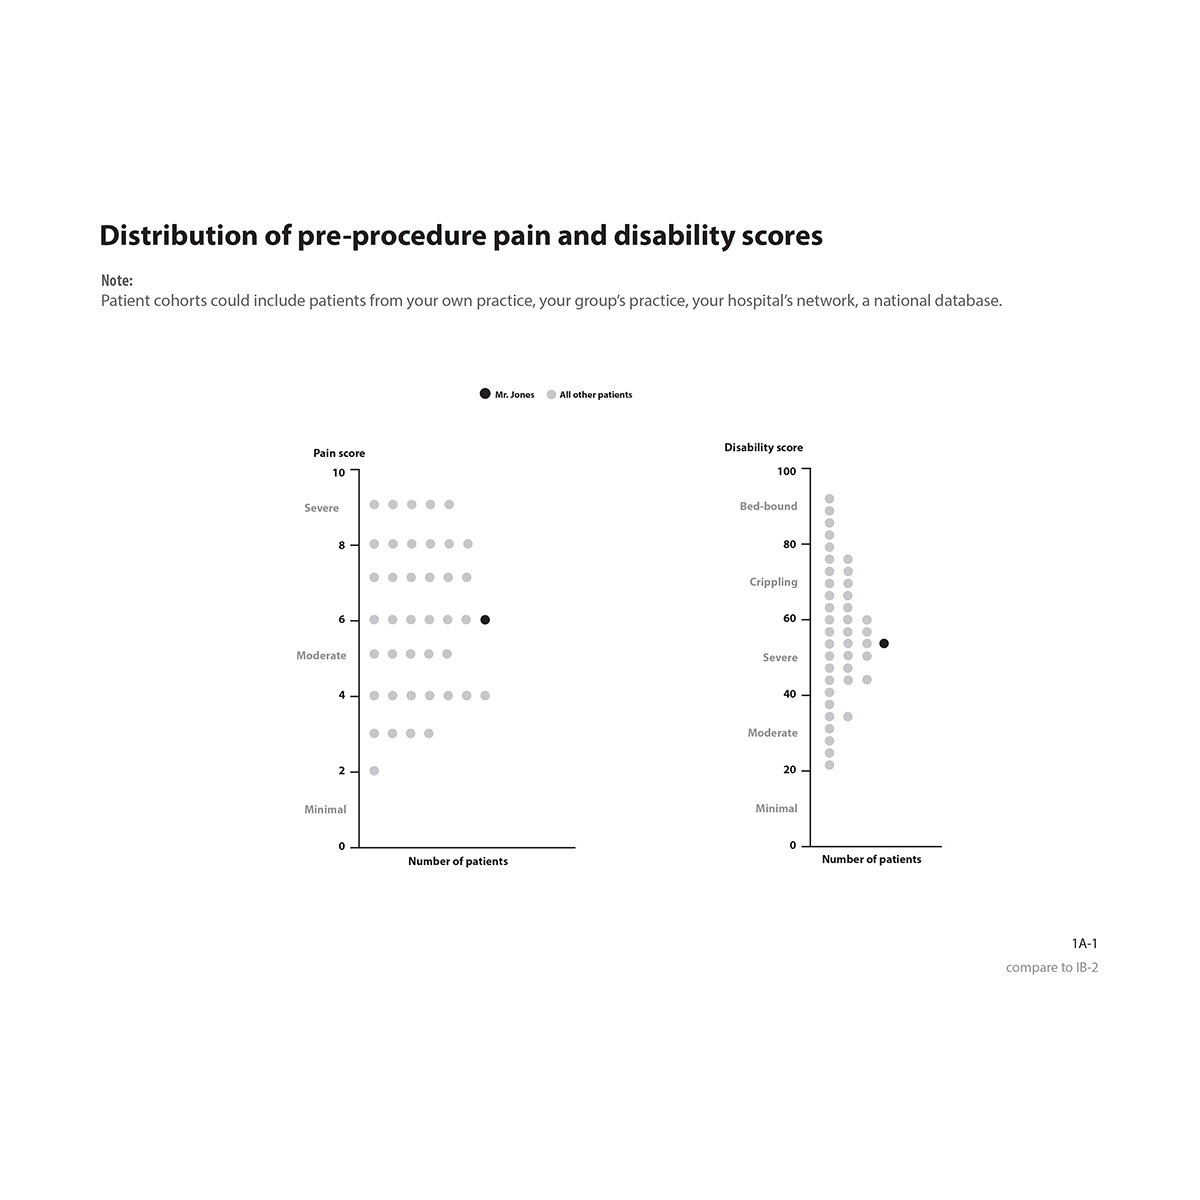 Graph showing distribution of pre-intervention pain and disability scores comparing Mr. Jones to other patients.